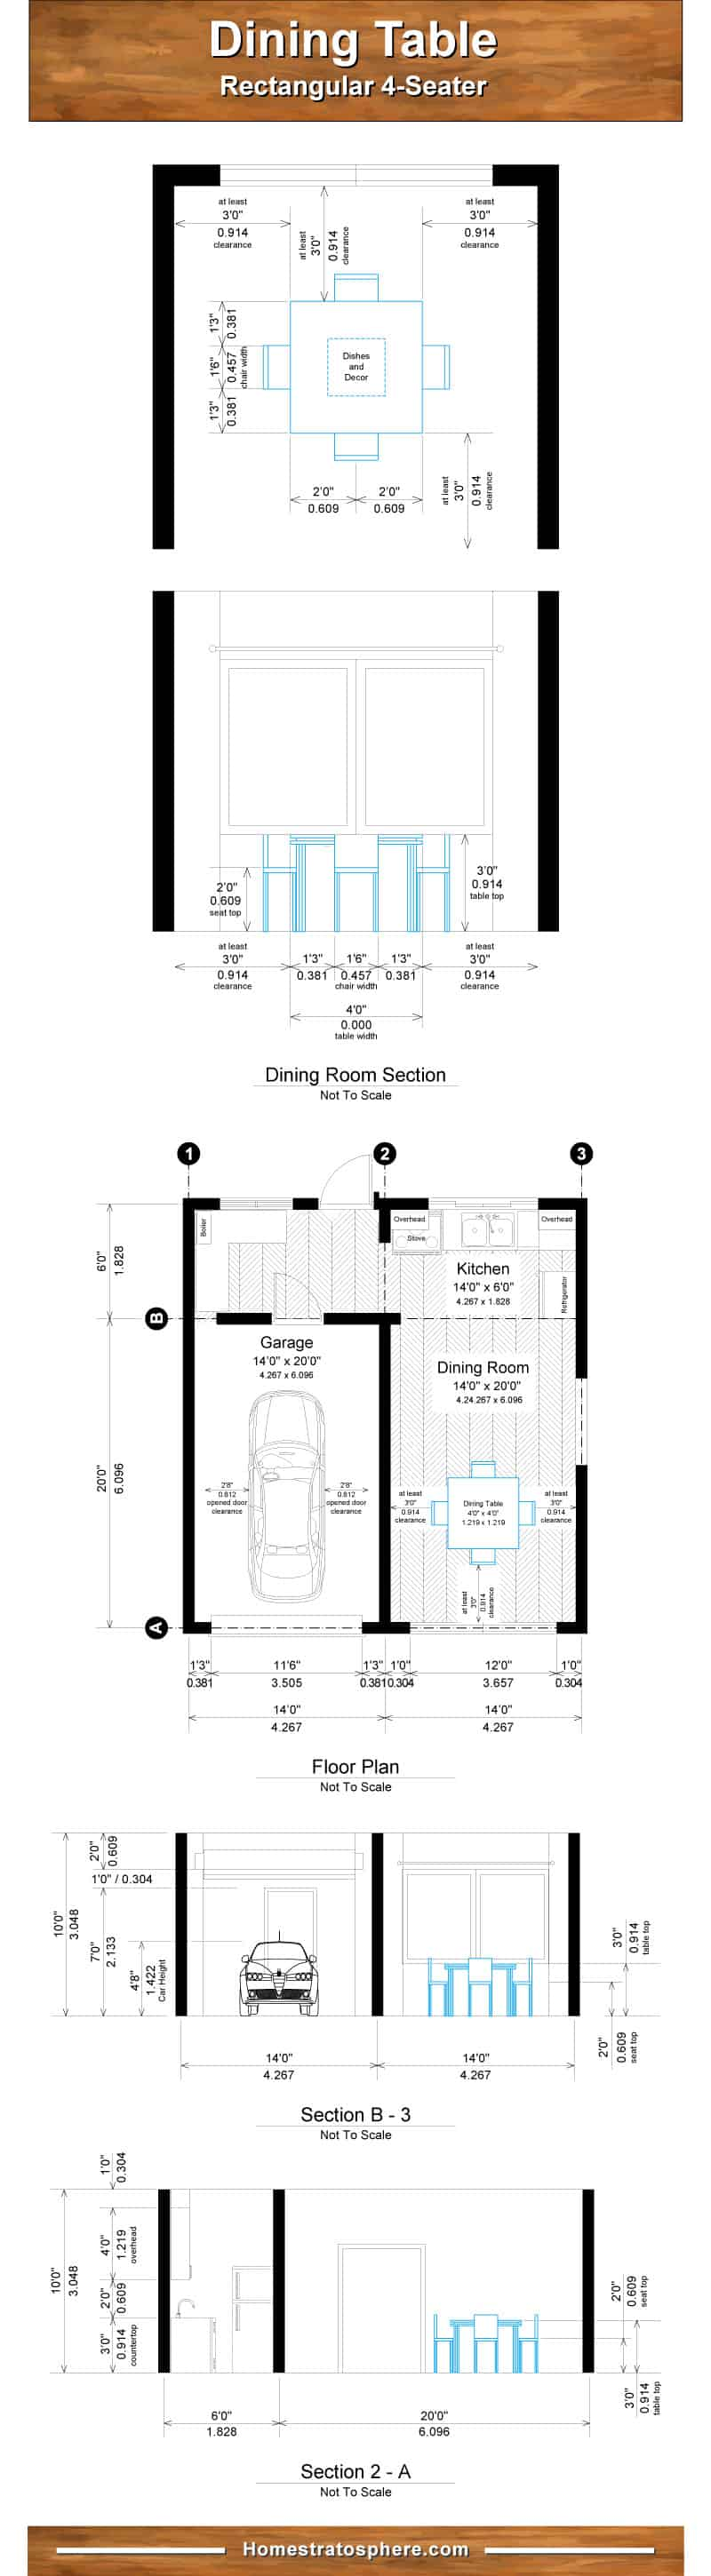 Proper Dining Room Table Dimensions For 4 6 8 10 And 12